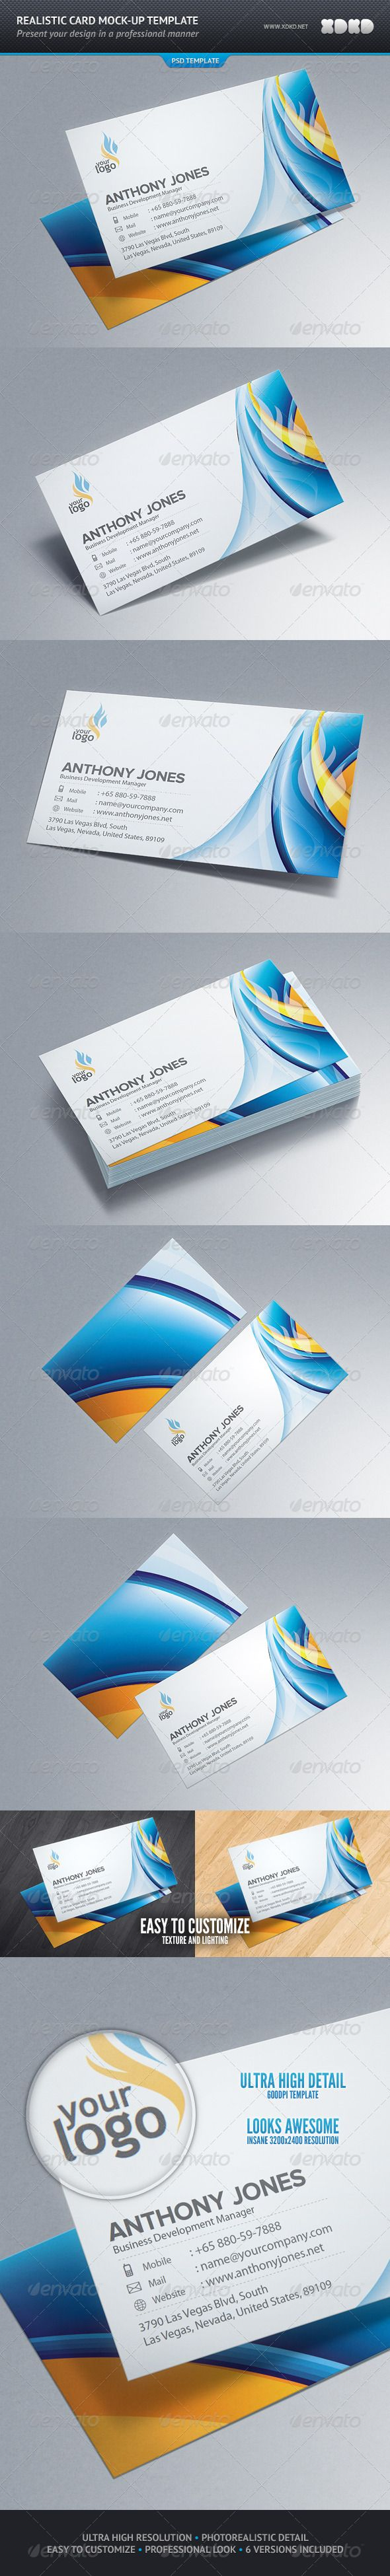 Photorealistic business card mockup template mockup business photorealistic business card mockup template graphicriver item for sale colourmoves